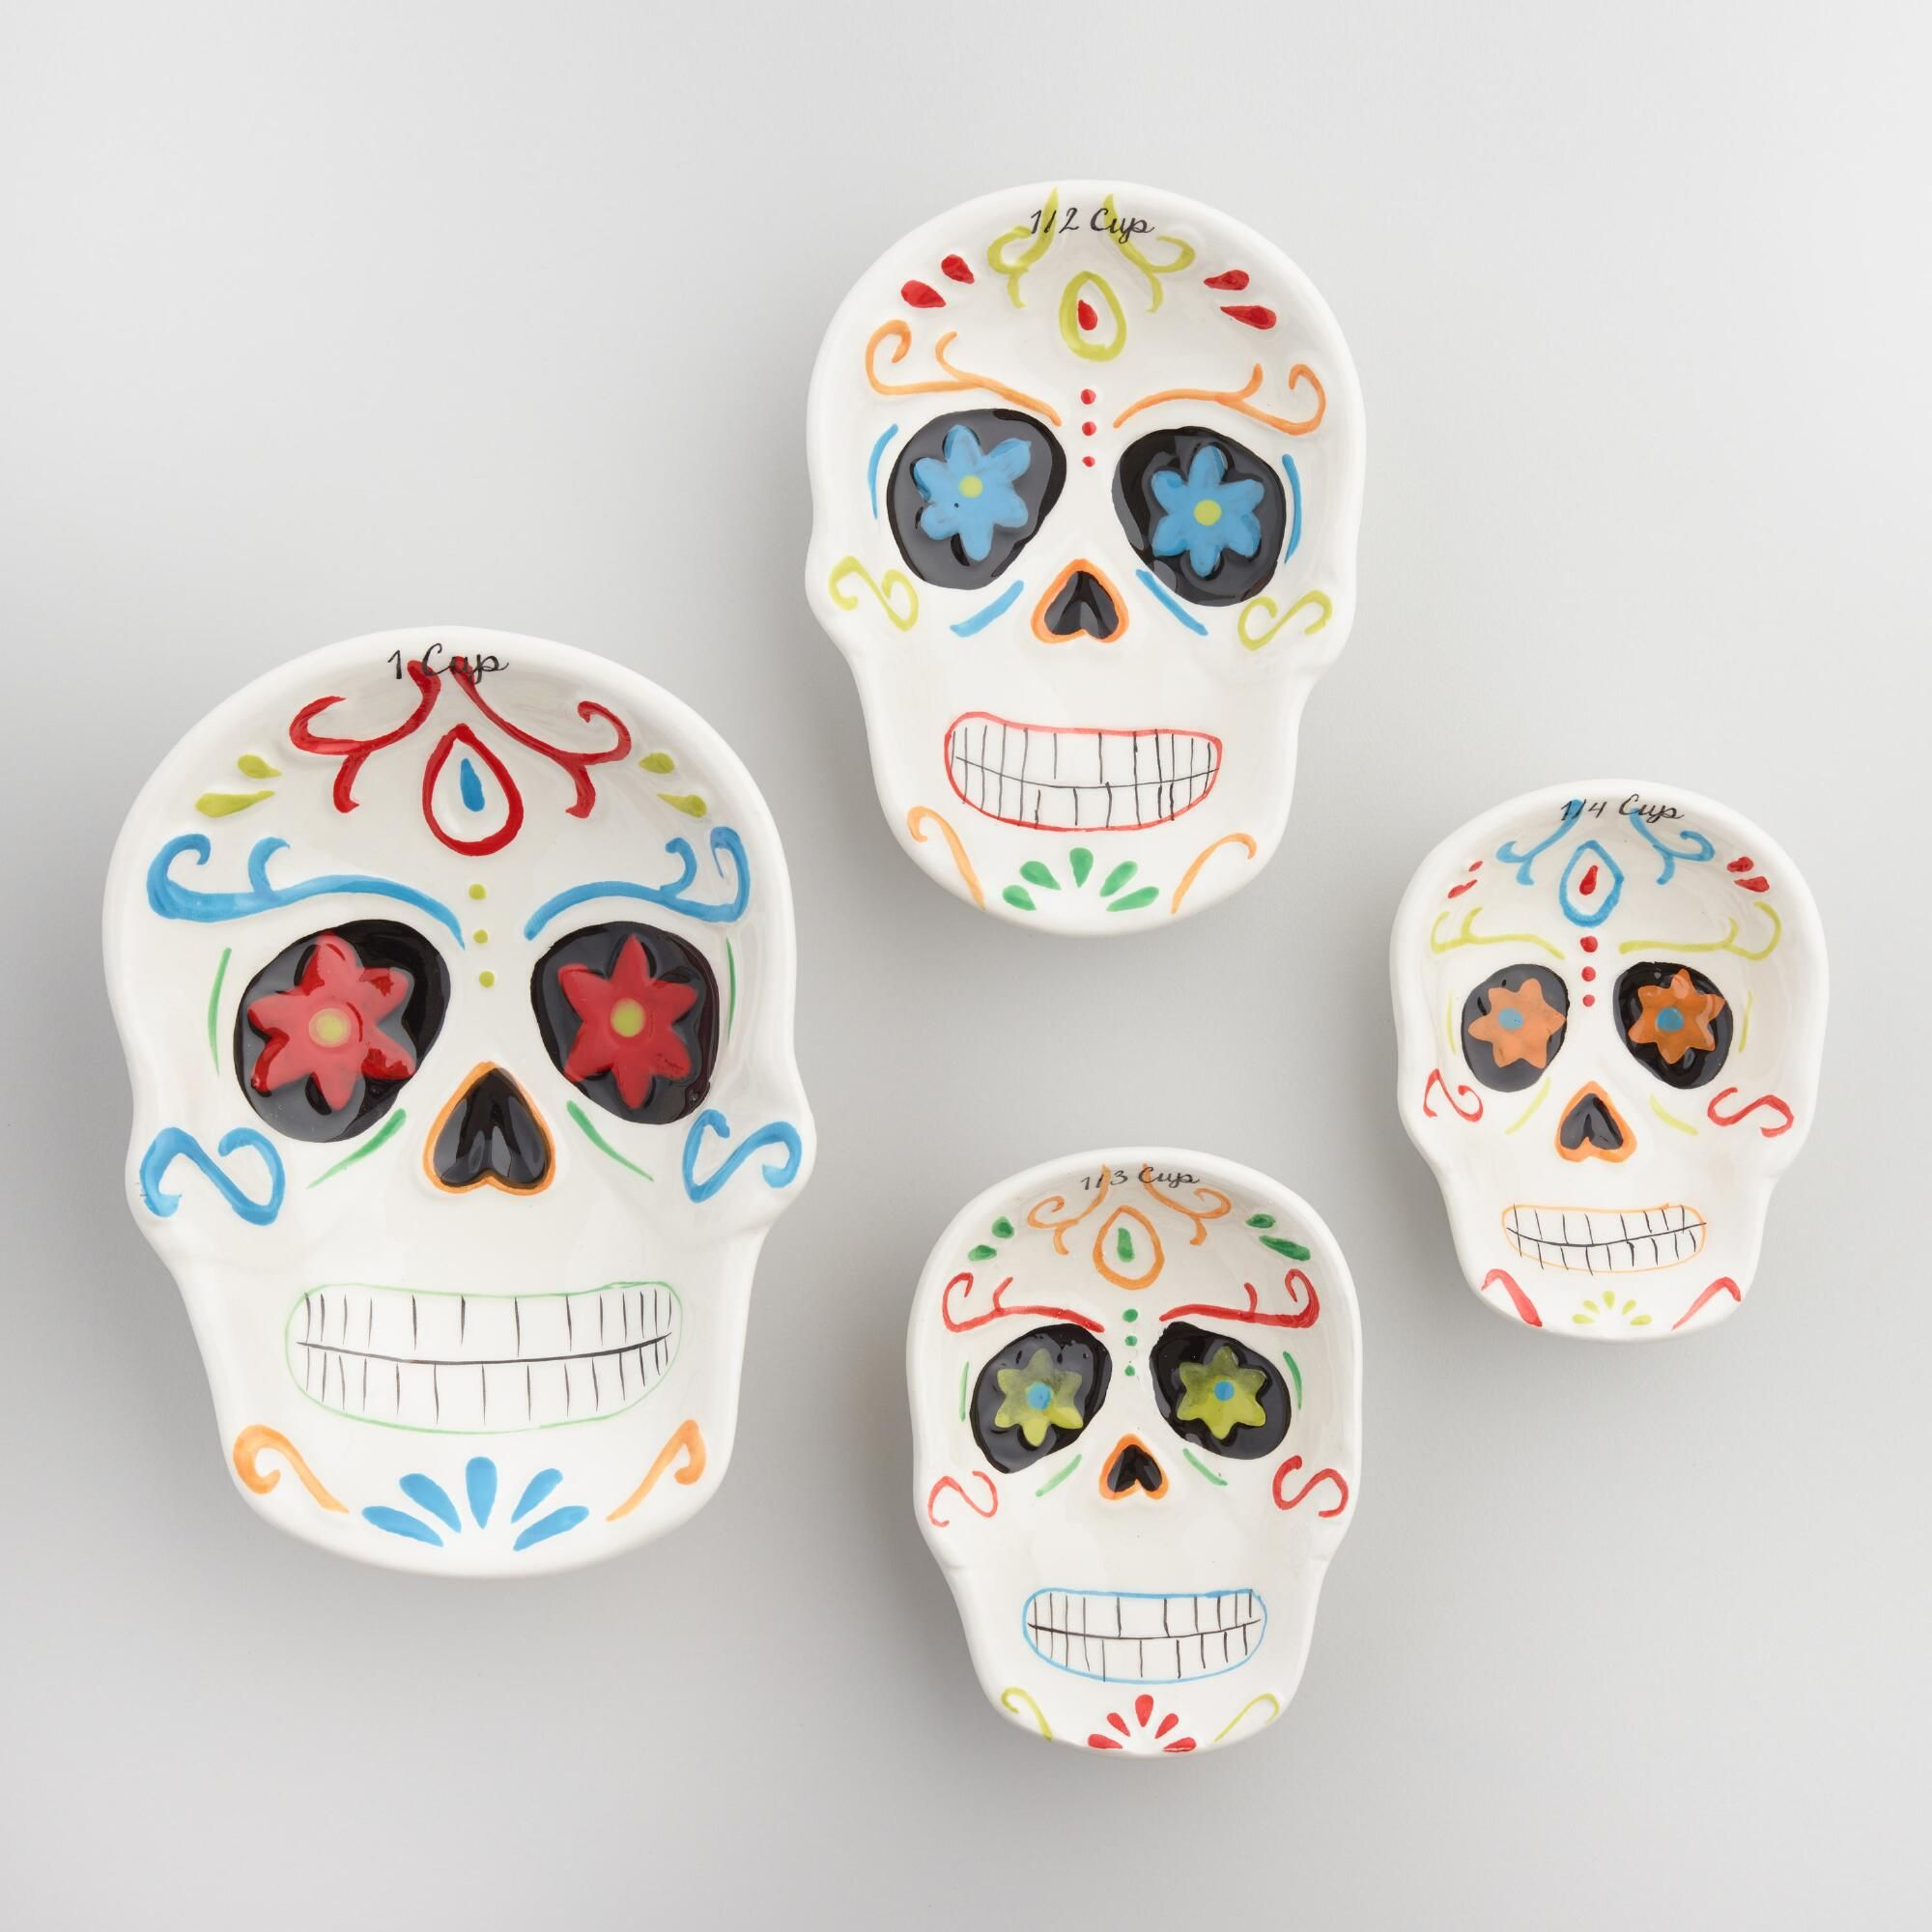 Our Ceramic Measuring Cups Are Shaped Like Skulls Each One Colorfully Embellished With Bright Artwork To Celebrate Sugar Skull Decor Rock Decor Bright Artwork